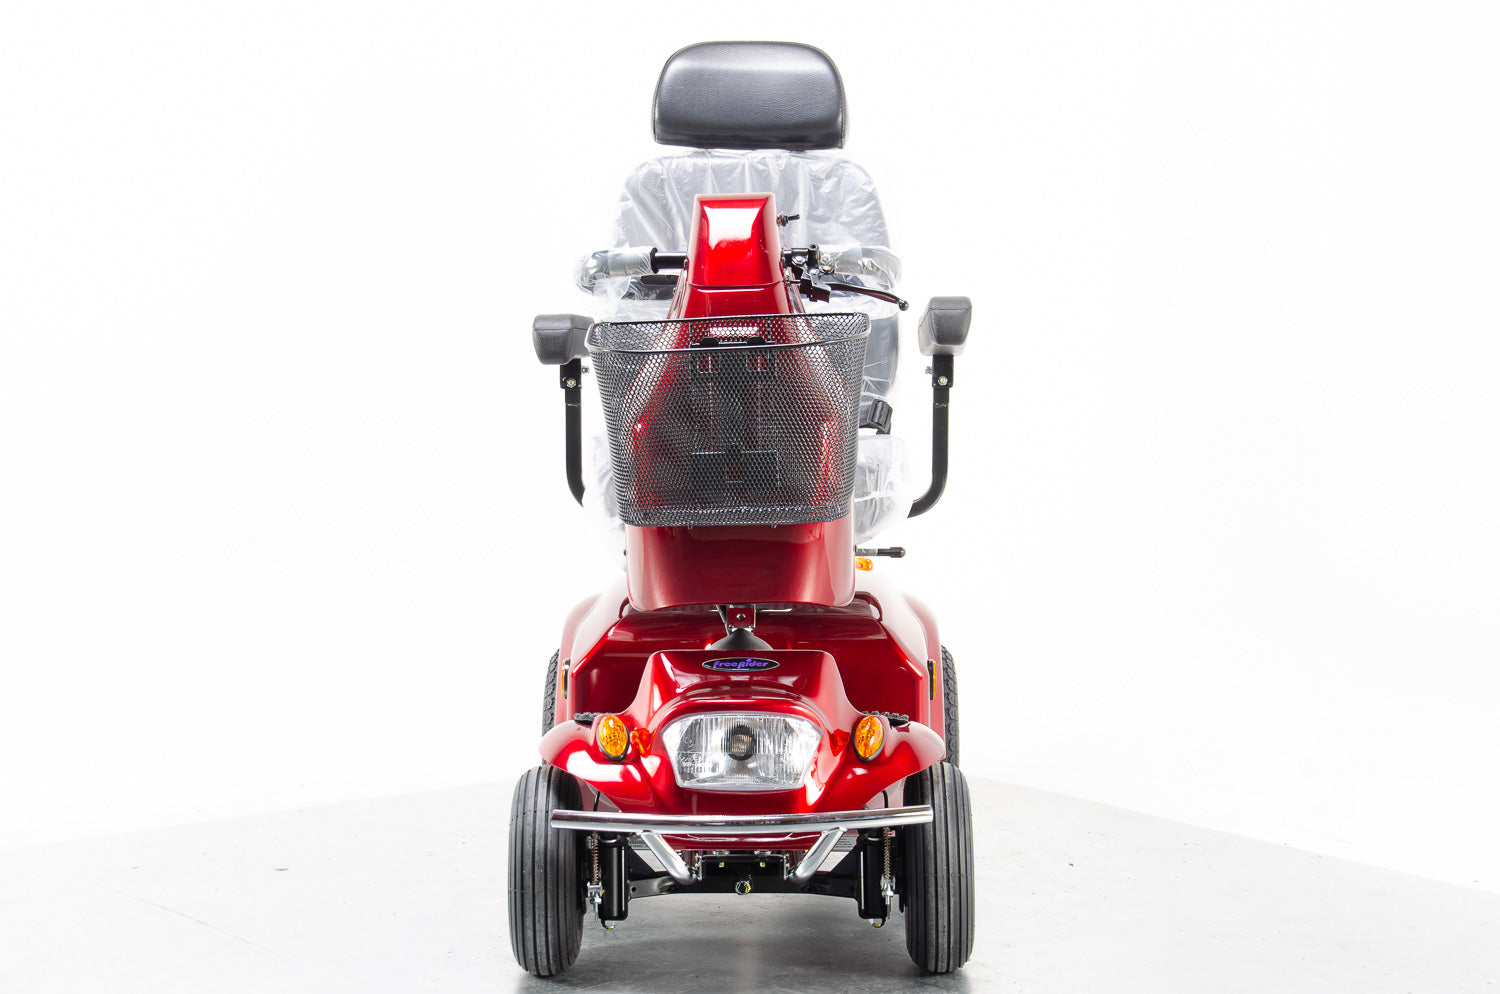 New Freerider City Ranger 8 8mph Mid Size Class 3 Mobility Scooter